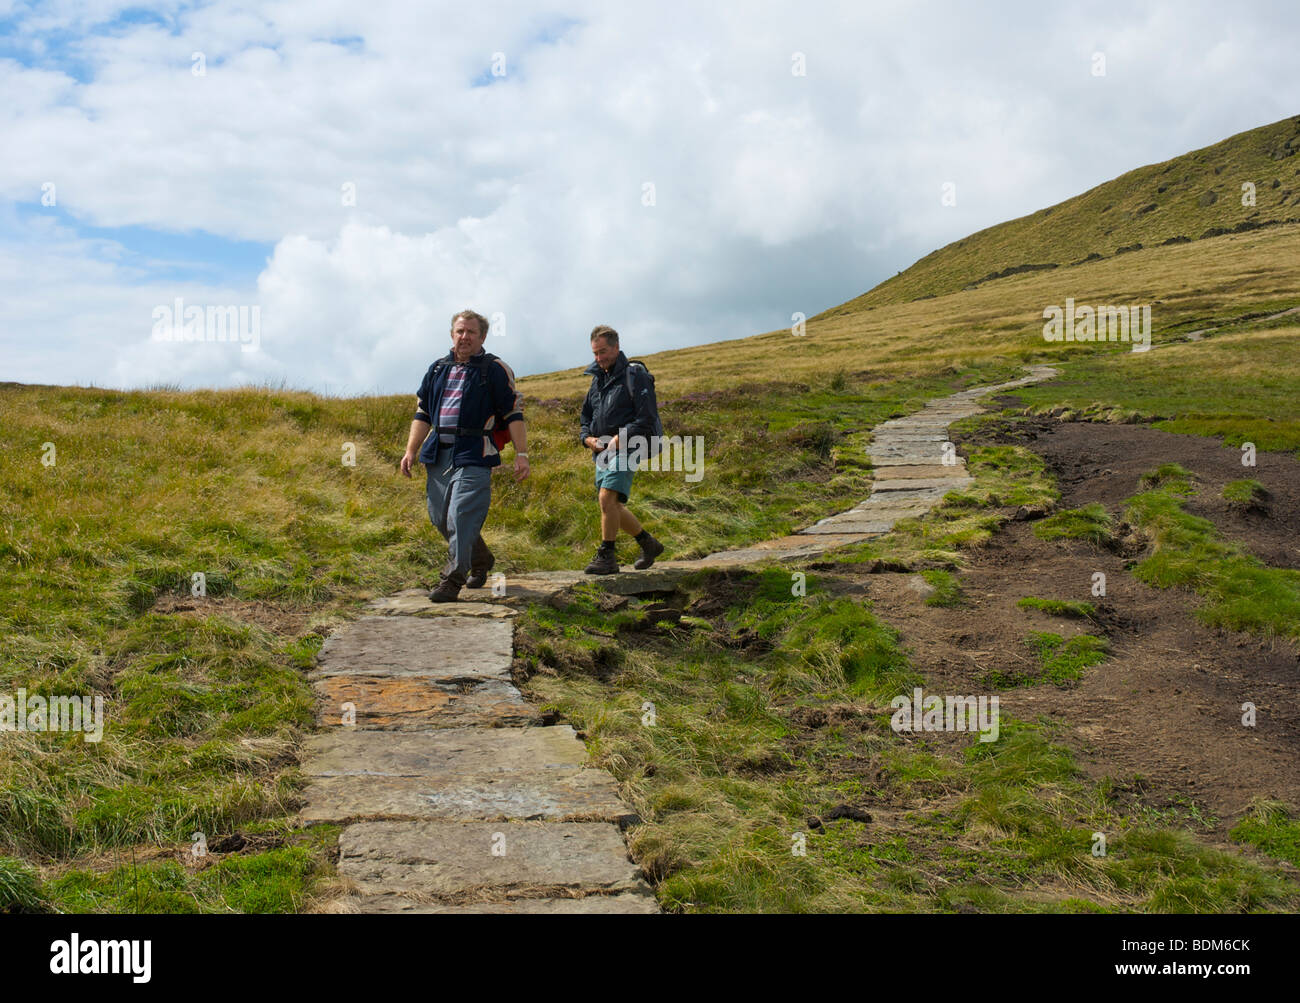 Two walkers on new flagged section of the Pennine Way path, Kinder Scout, near Edale, Peak National Park, Derbyshire, Stock Photo